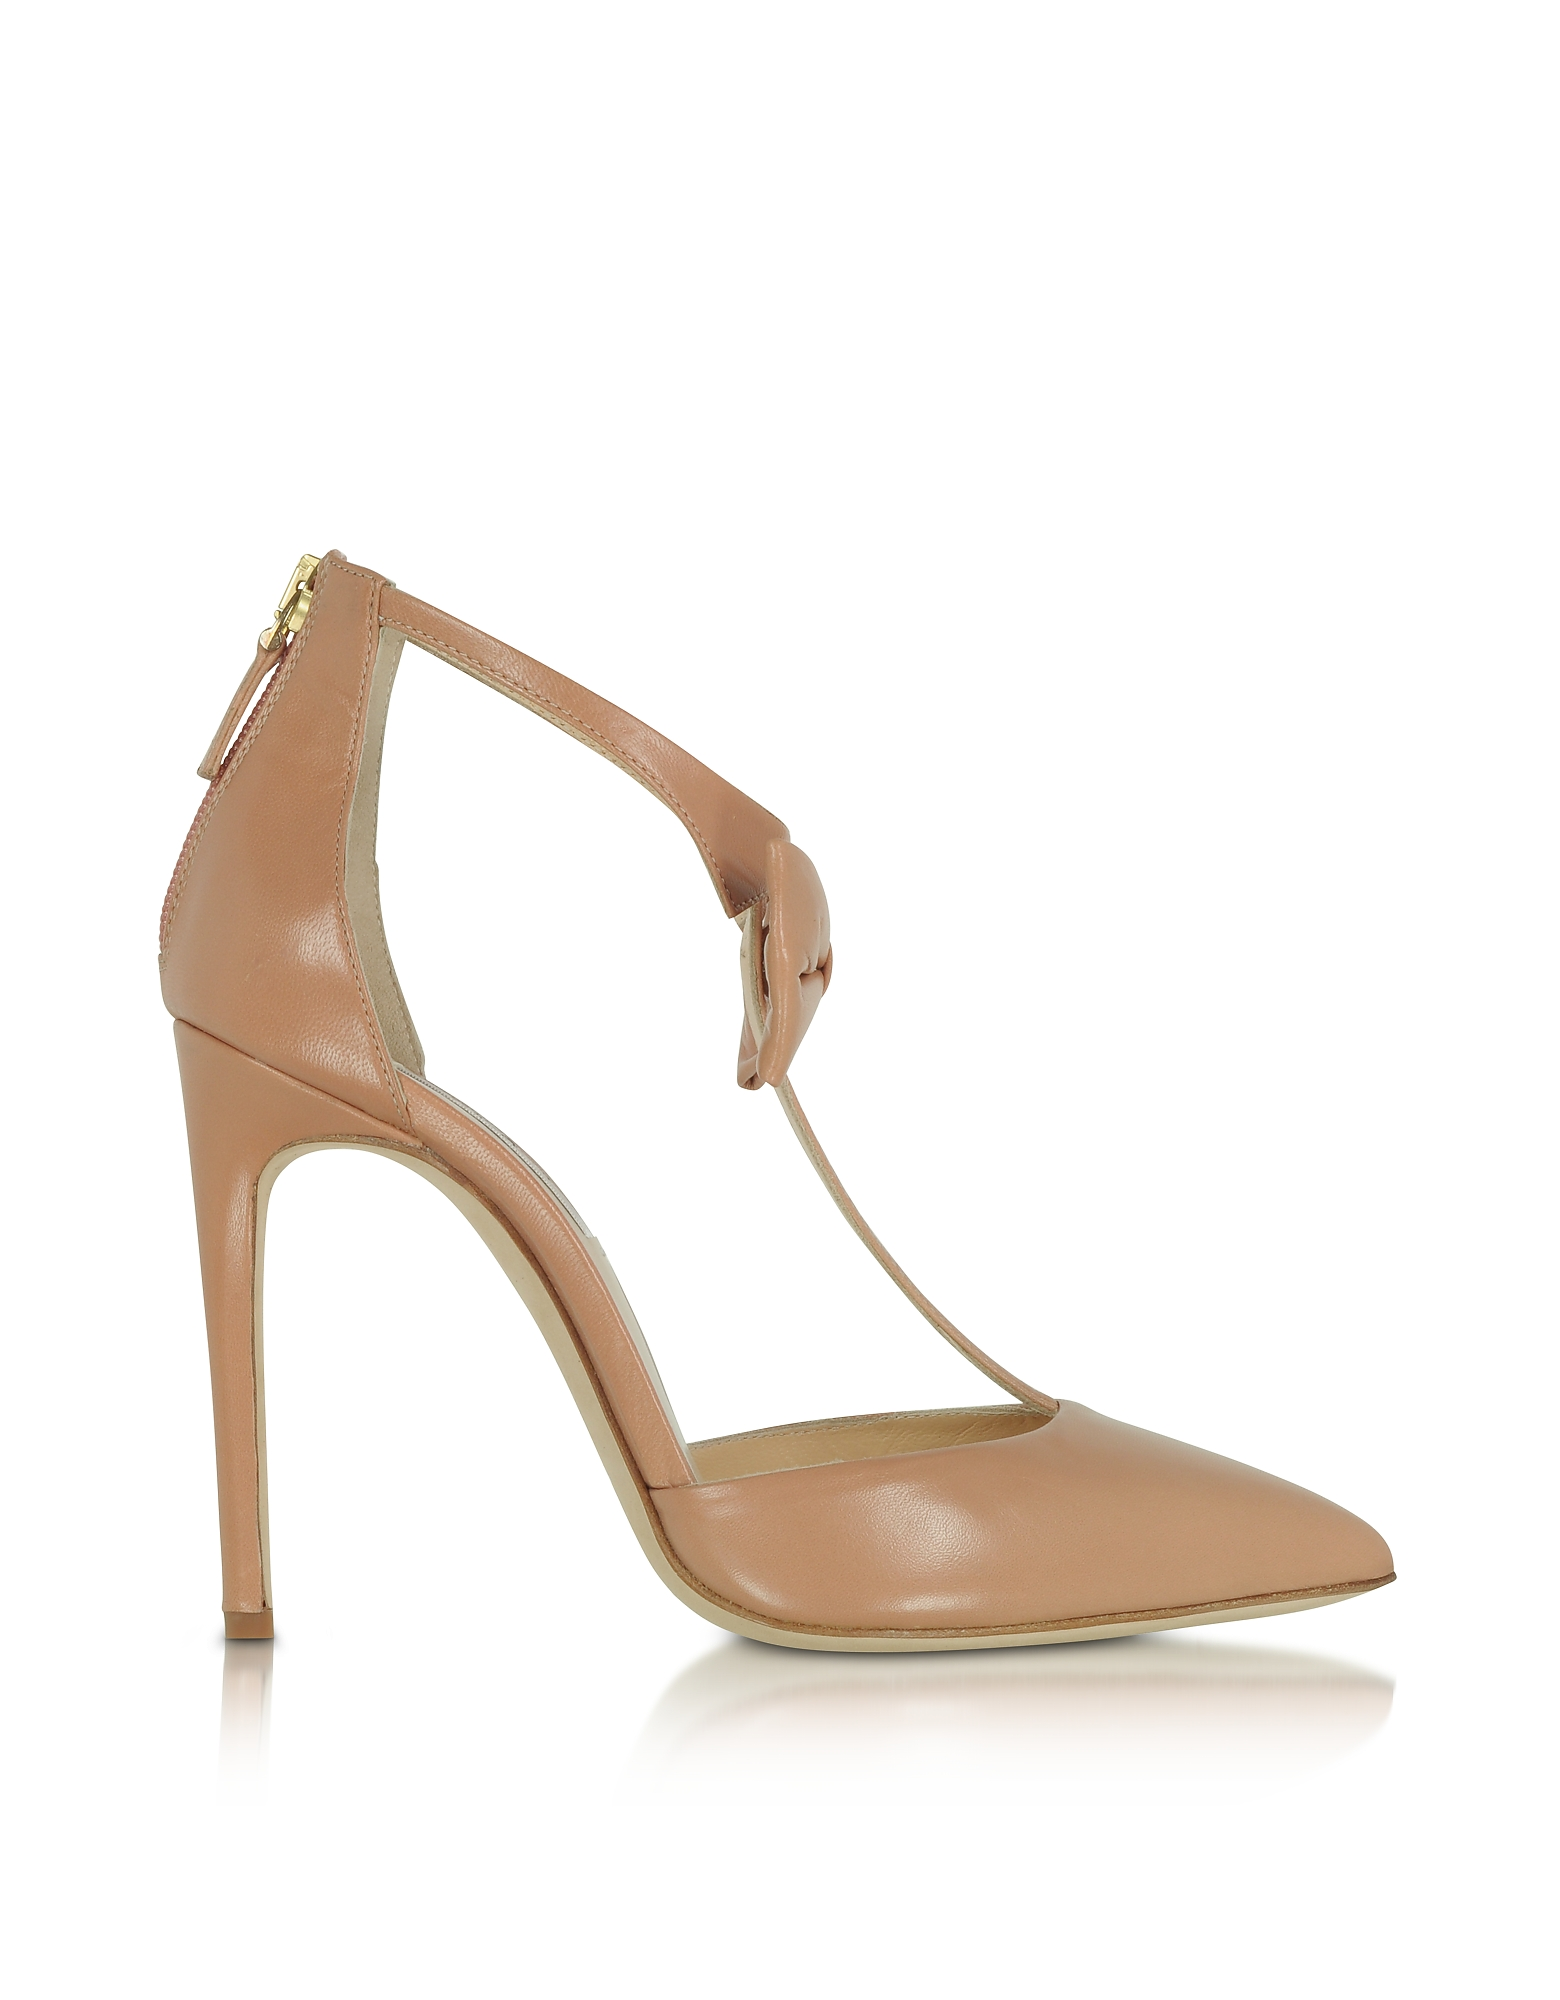 Olgana Paris Shoes, La Garconne Nude Leather High-Heel Pump